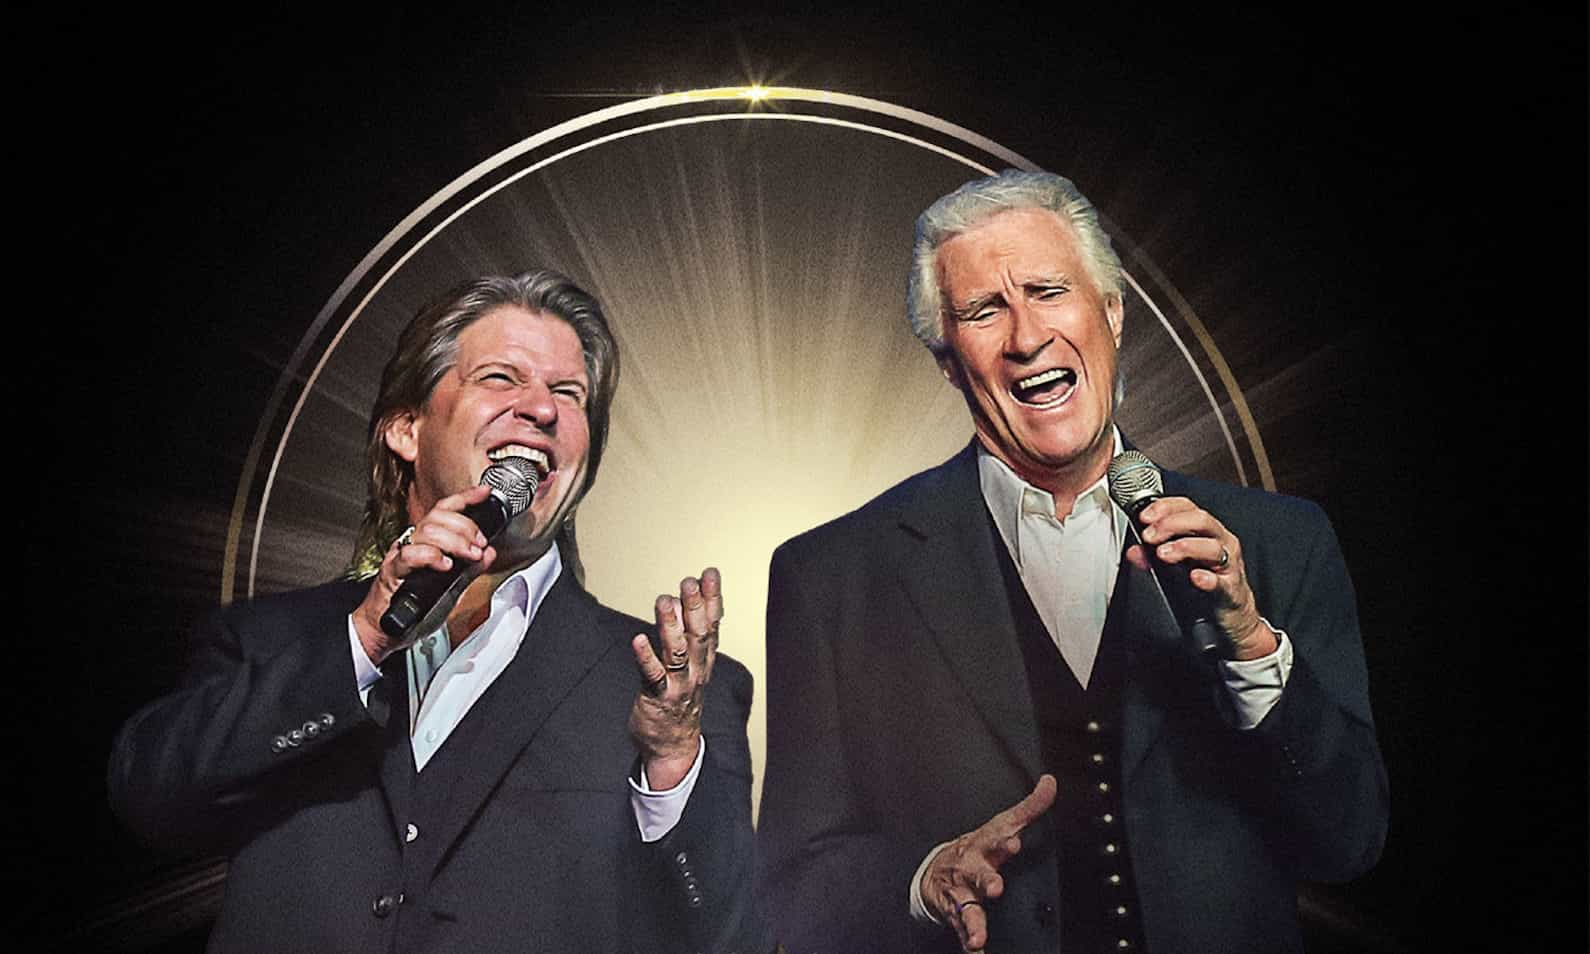 Righteous-Brothers-meet-greet-vip